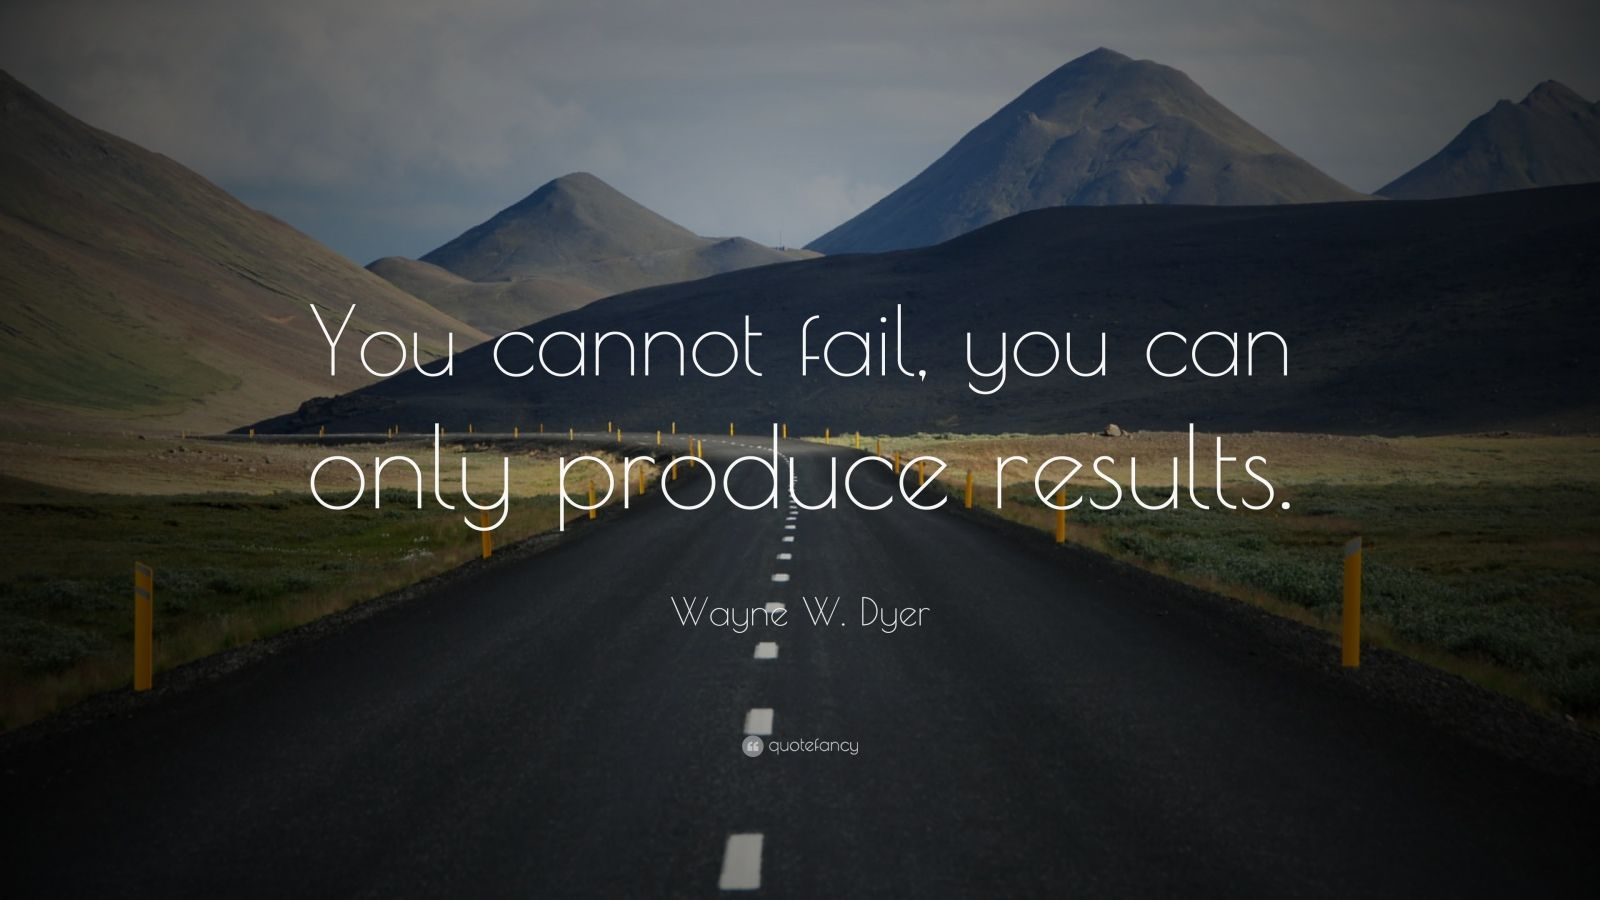 """Wayne W. Dyer Quote: """"You cannot fail, you can only produce results."""""""